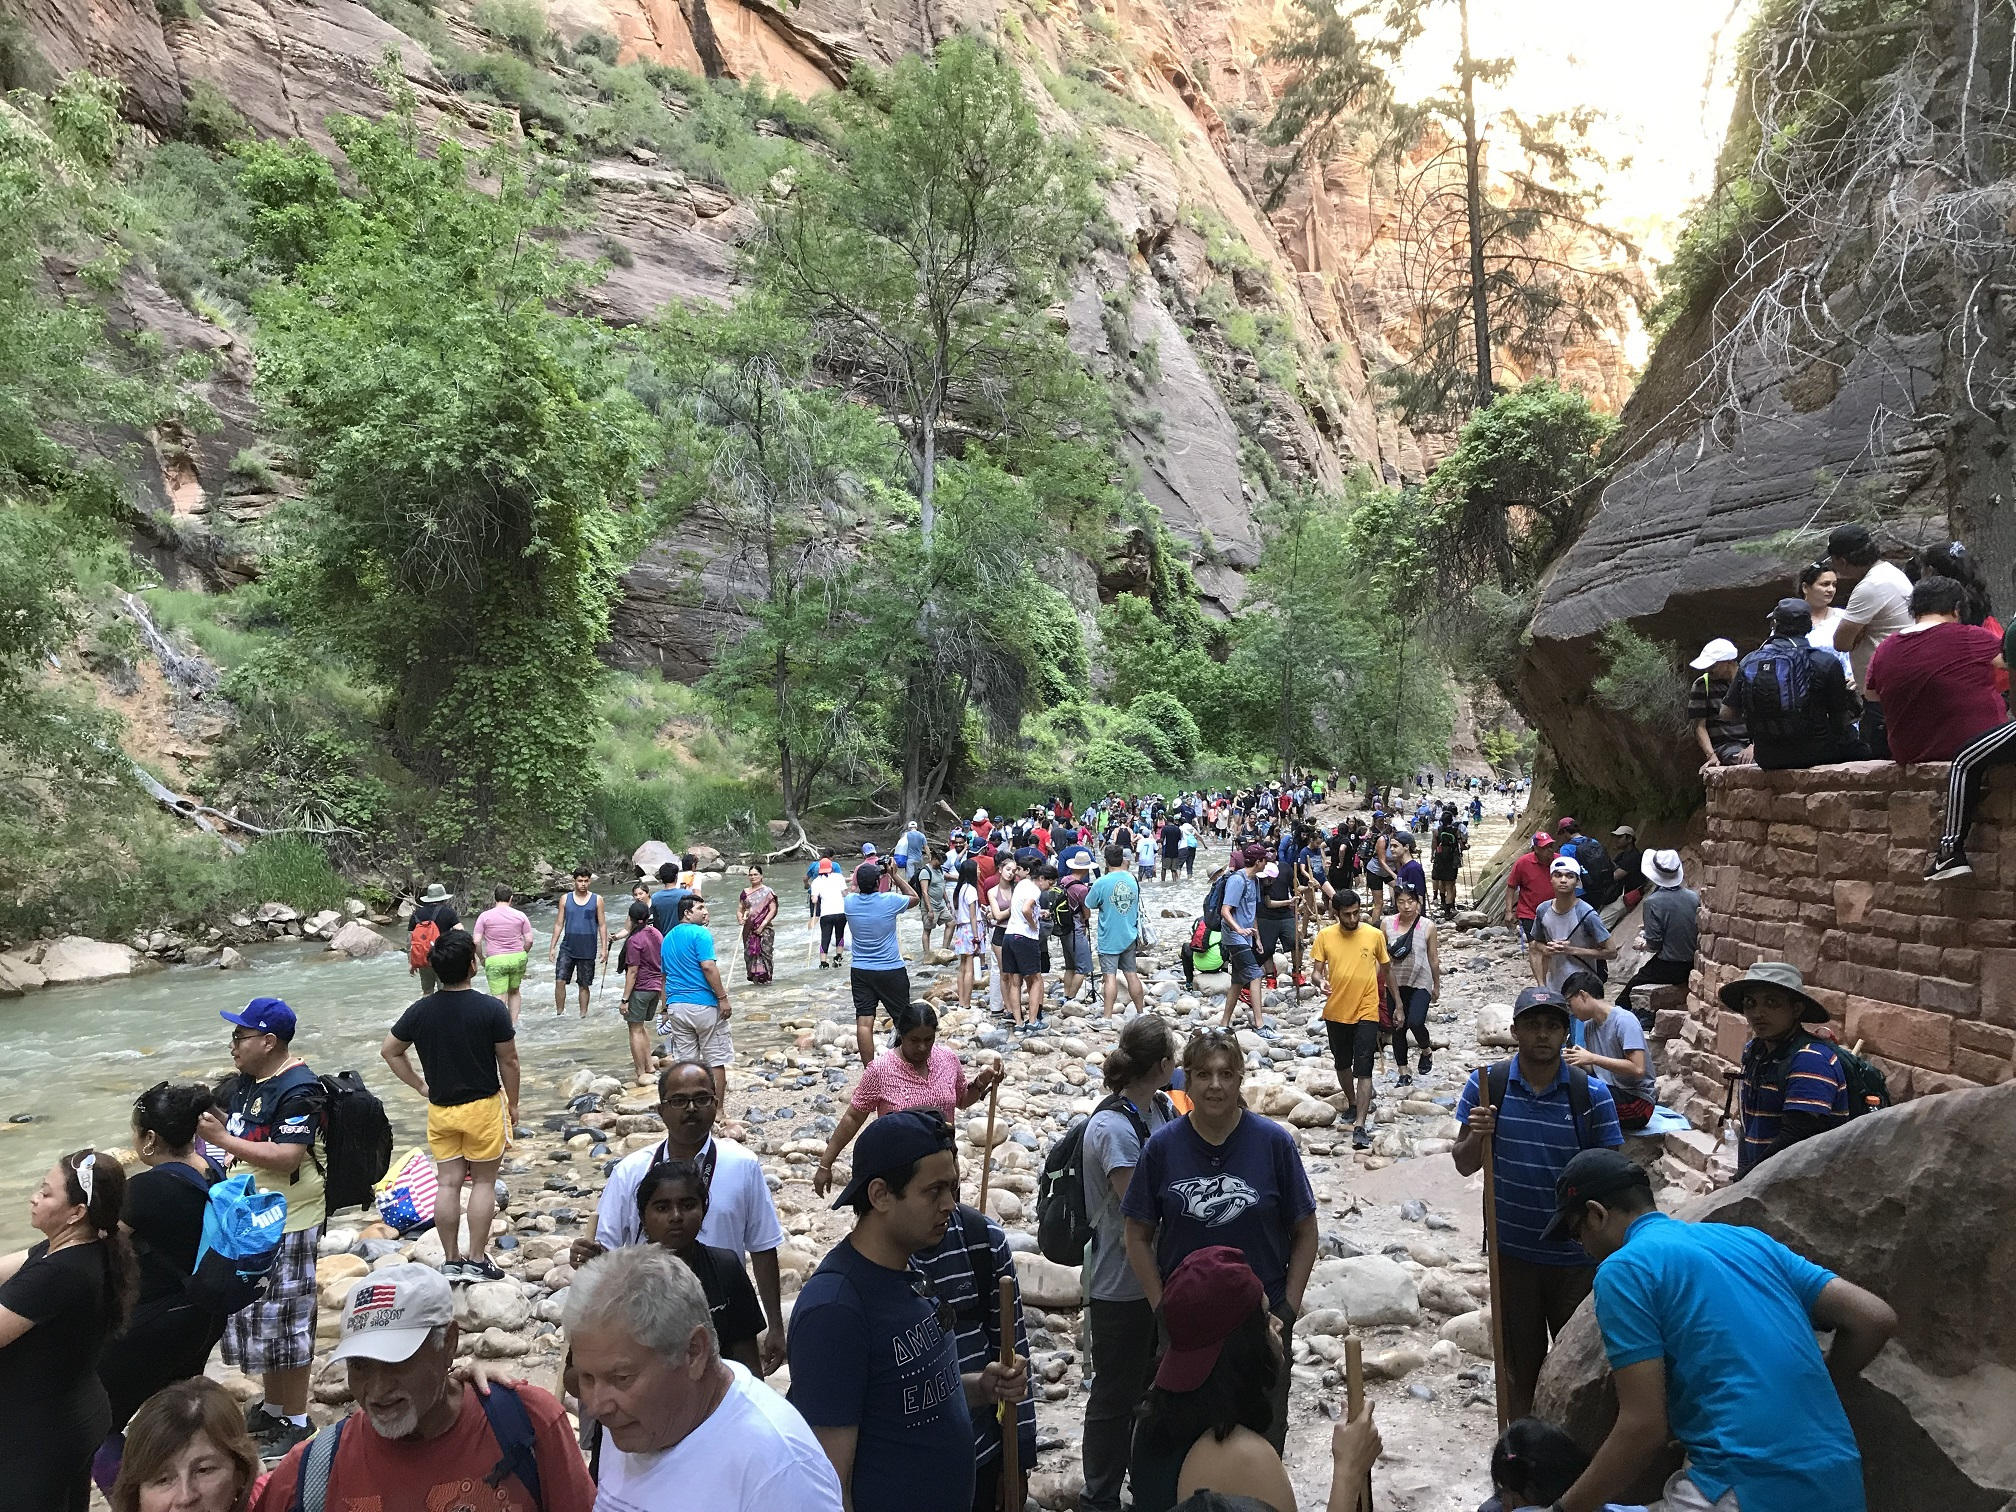 Hundreds of people walk in a river surrounded by steep canyon walls